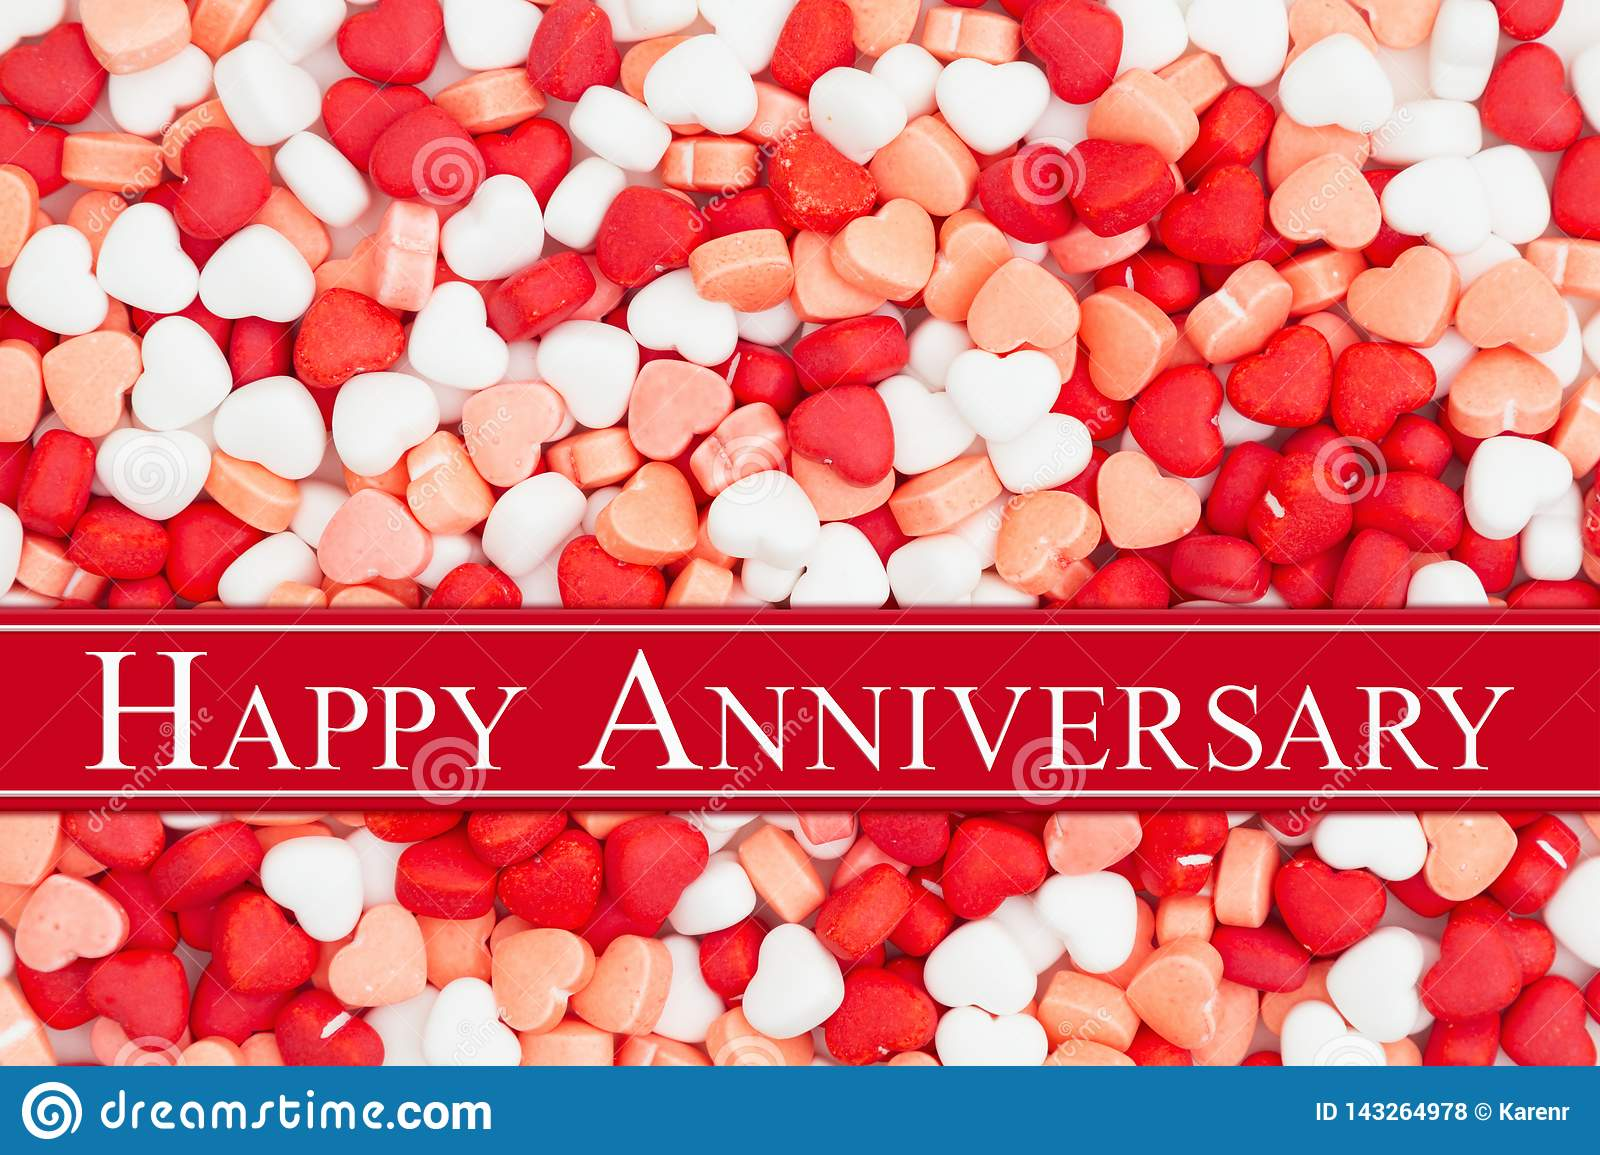 Happy Anniversary greeting on a candy hearts